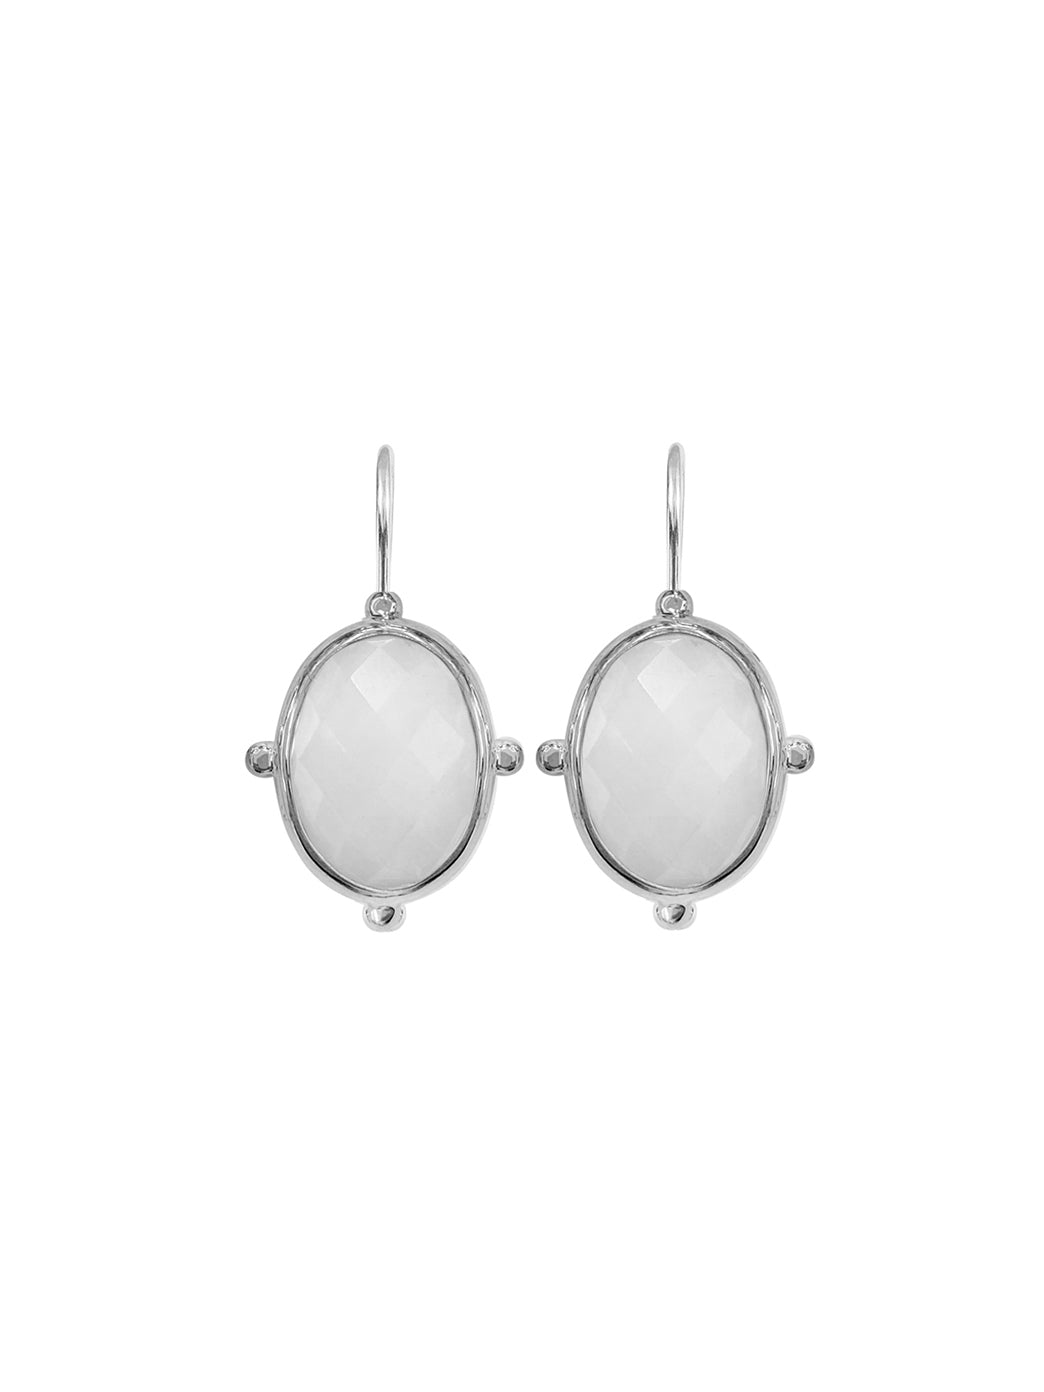 Fiorina Jewellery Oval Button Earrings White Quartzite